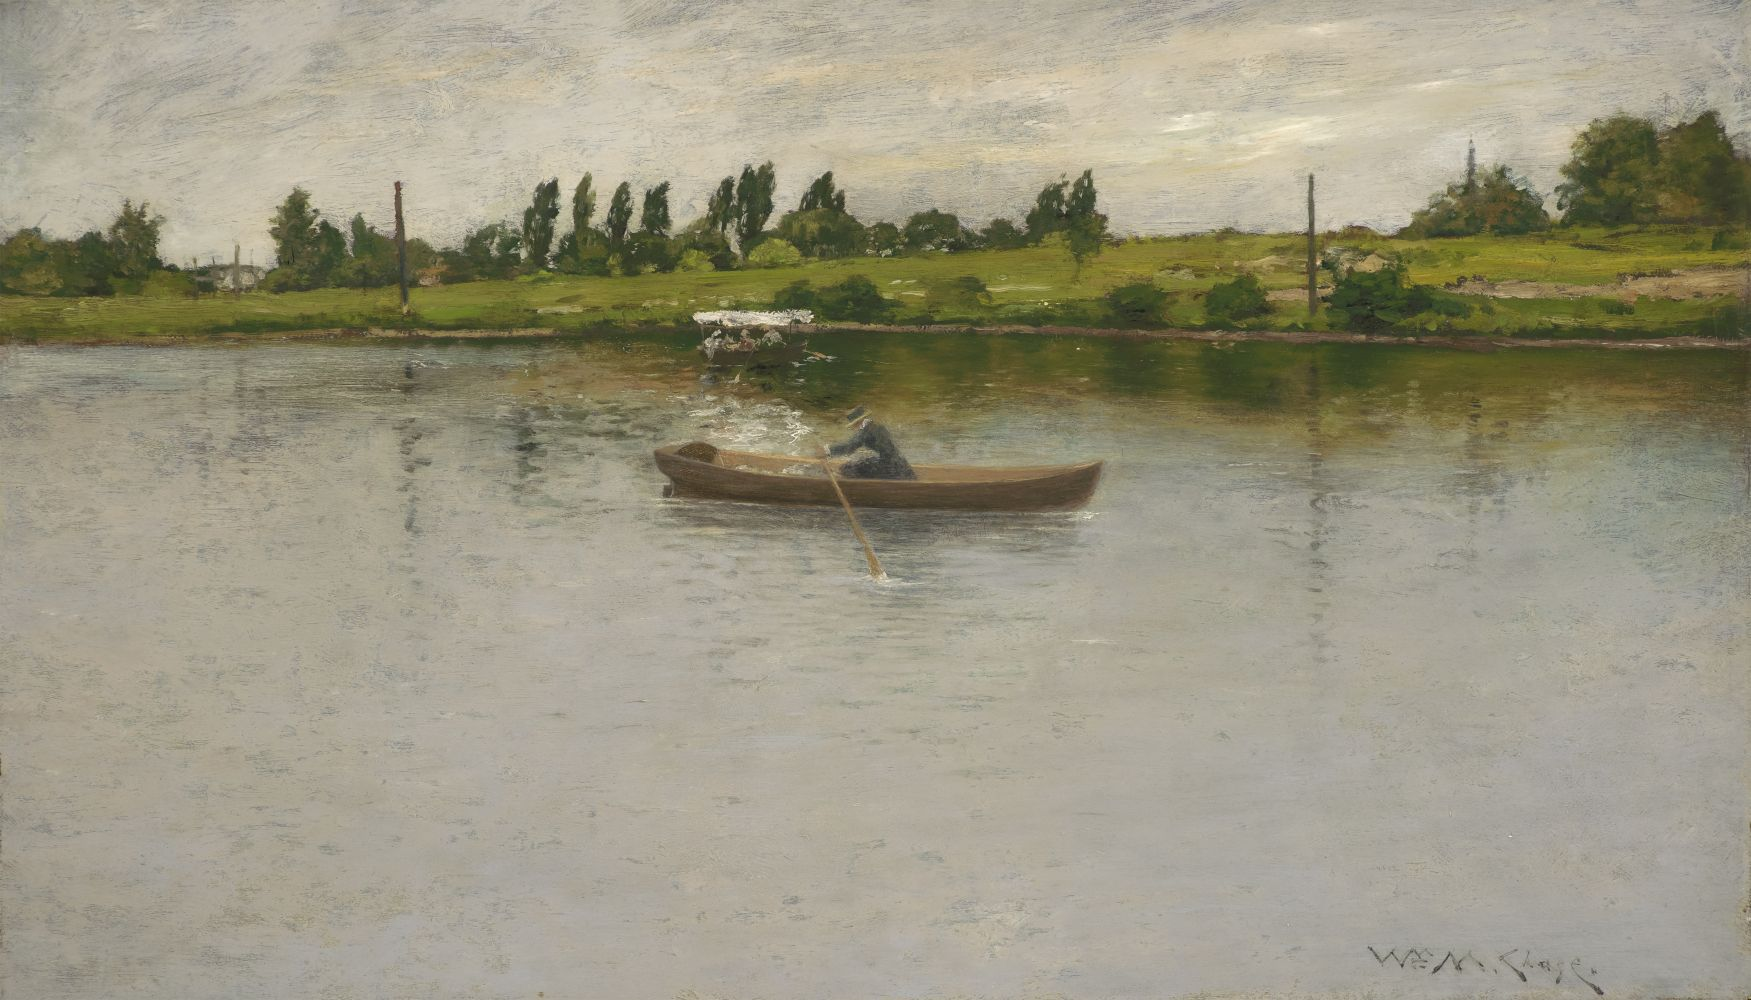 William Merritt Chase (1849–1916), Pulling for Shore, c. 1886, oil on panel, 17 3/4 x 30 in., signed lower right: Wm. M. Chase, a woman rowing on a lake